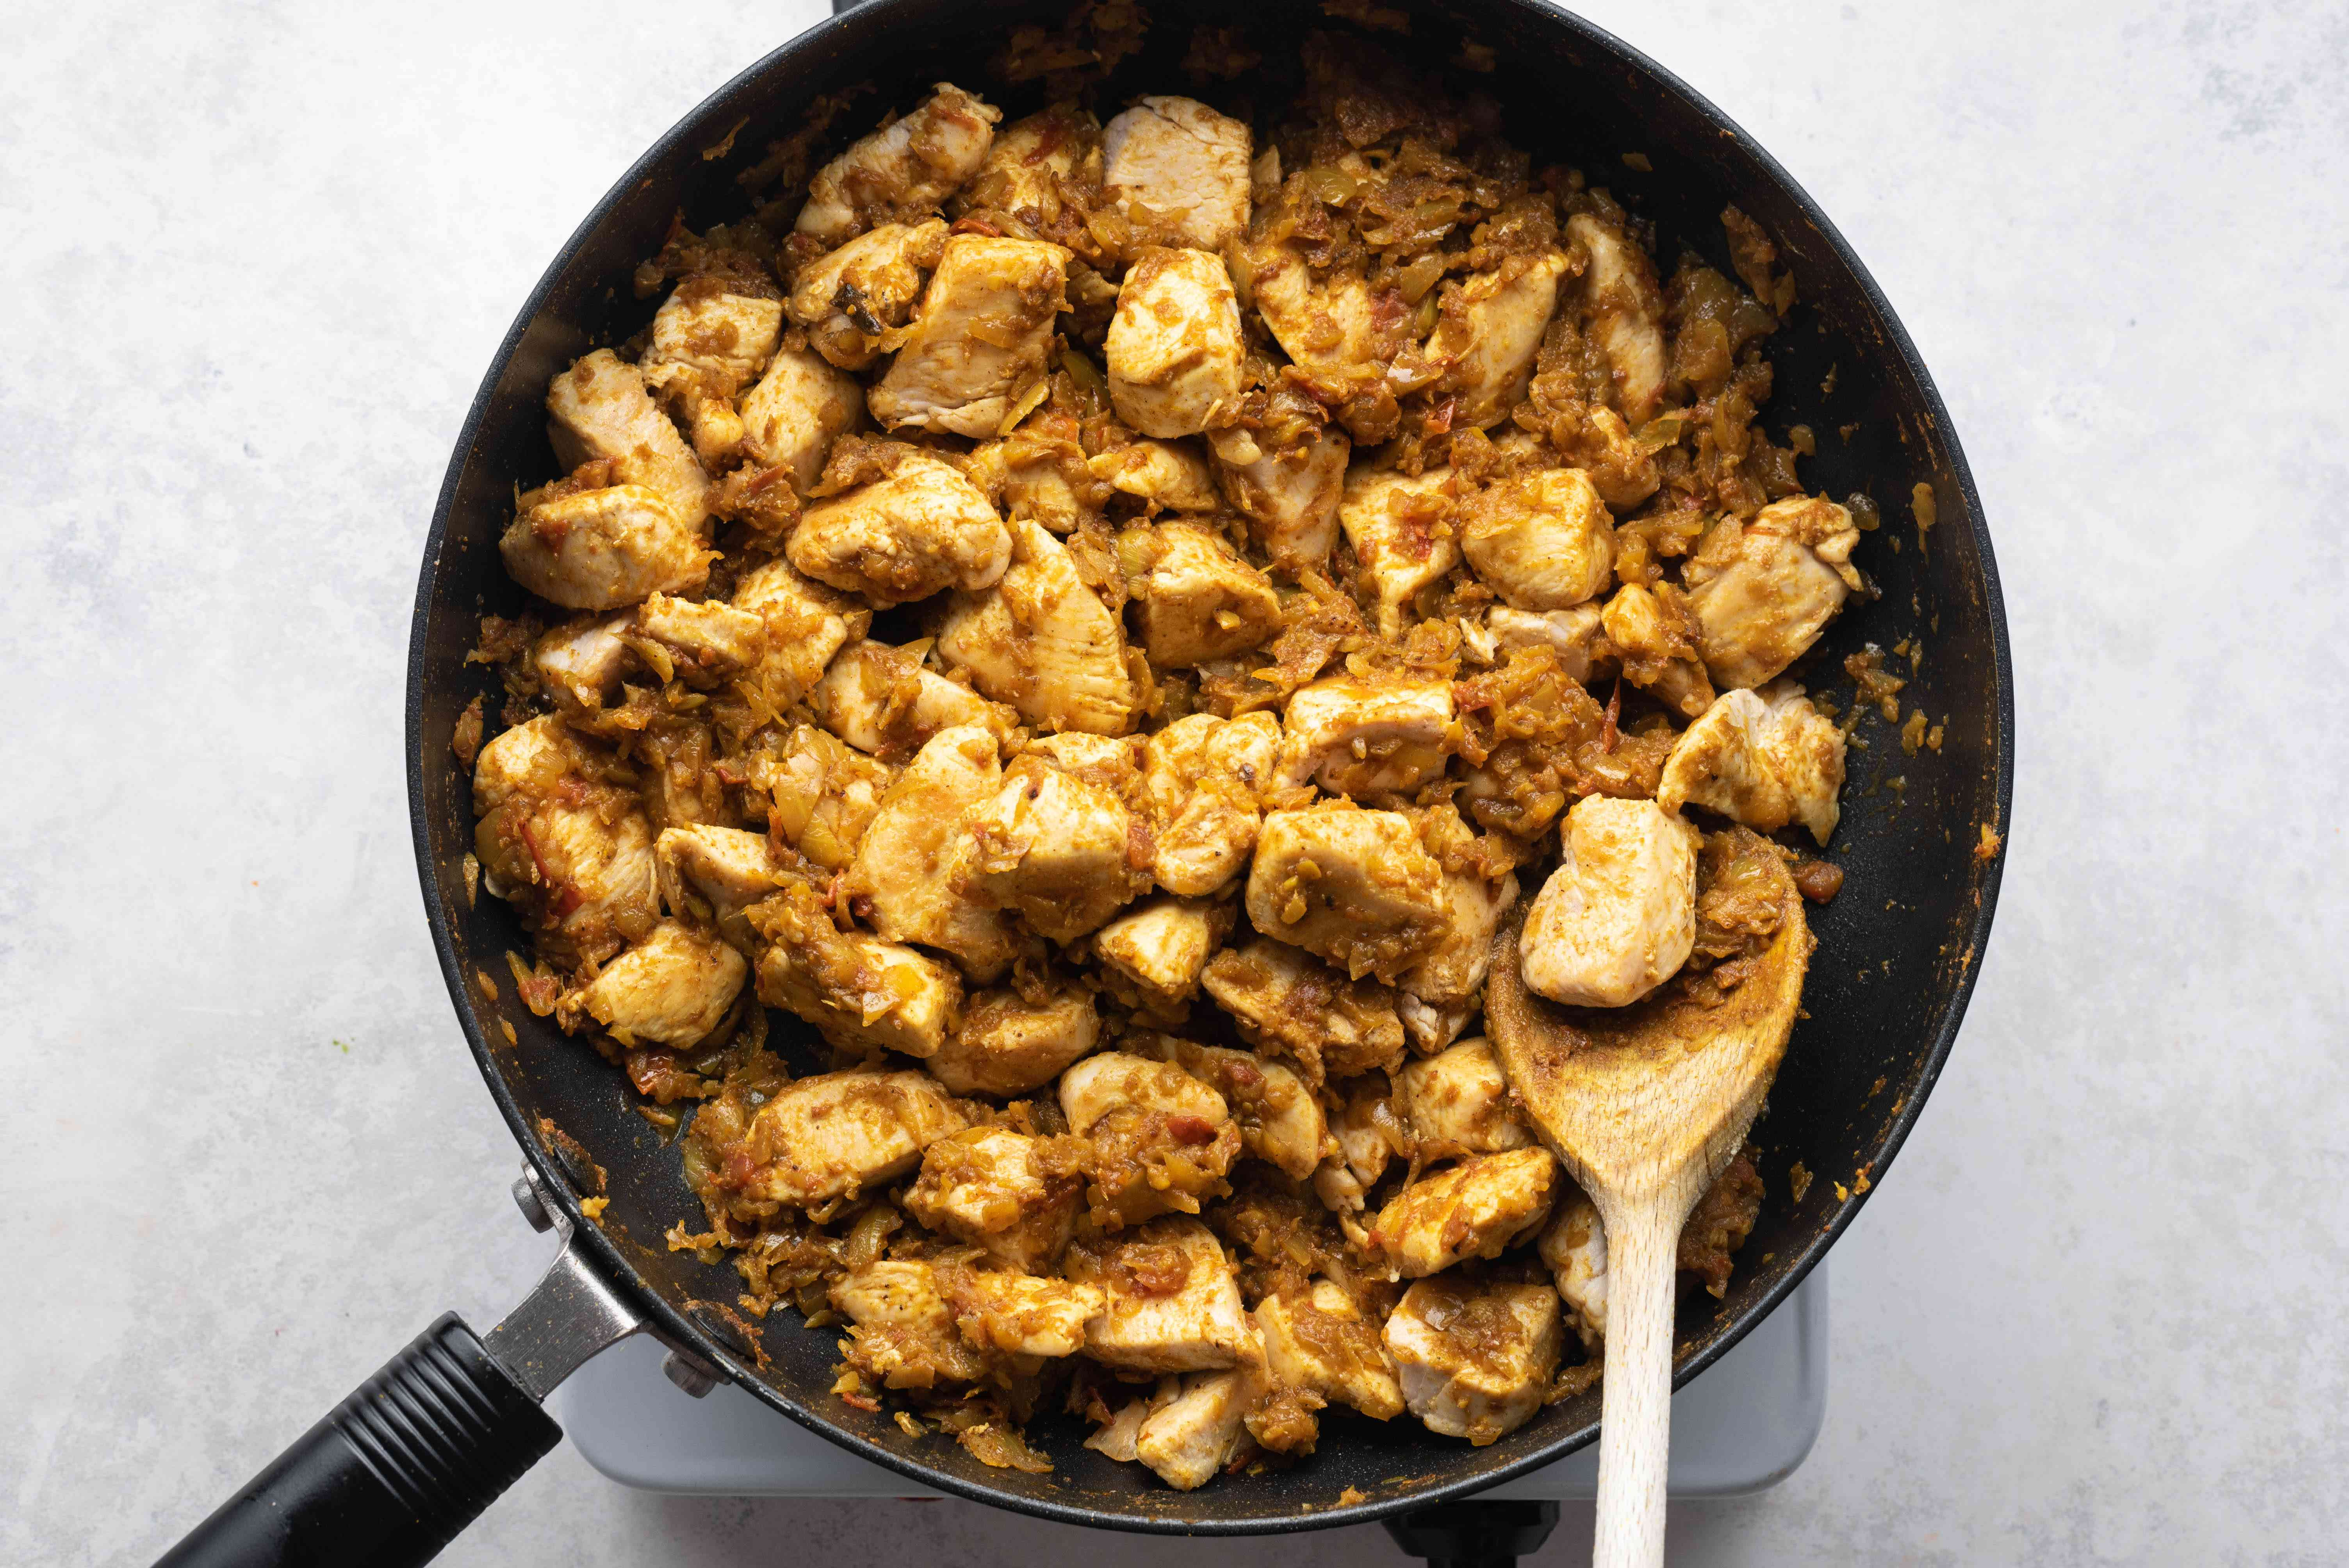 chicken added to the masala mixture in the pan